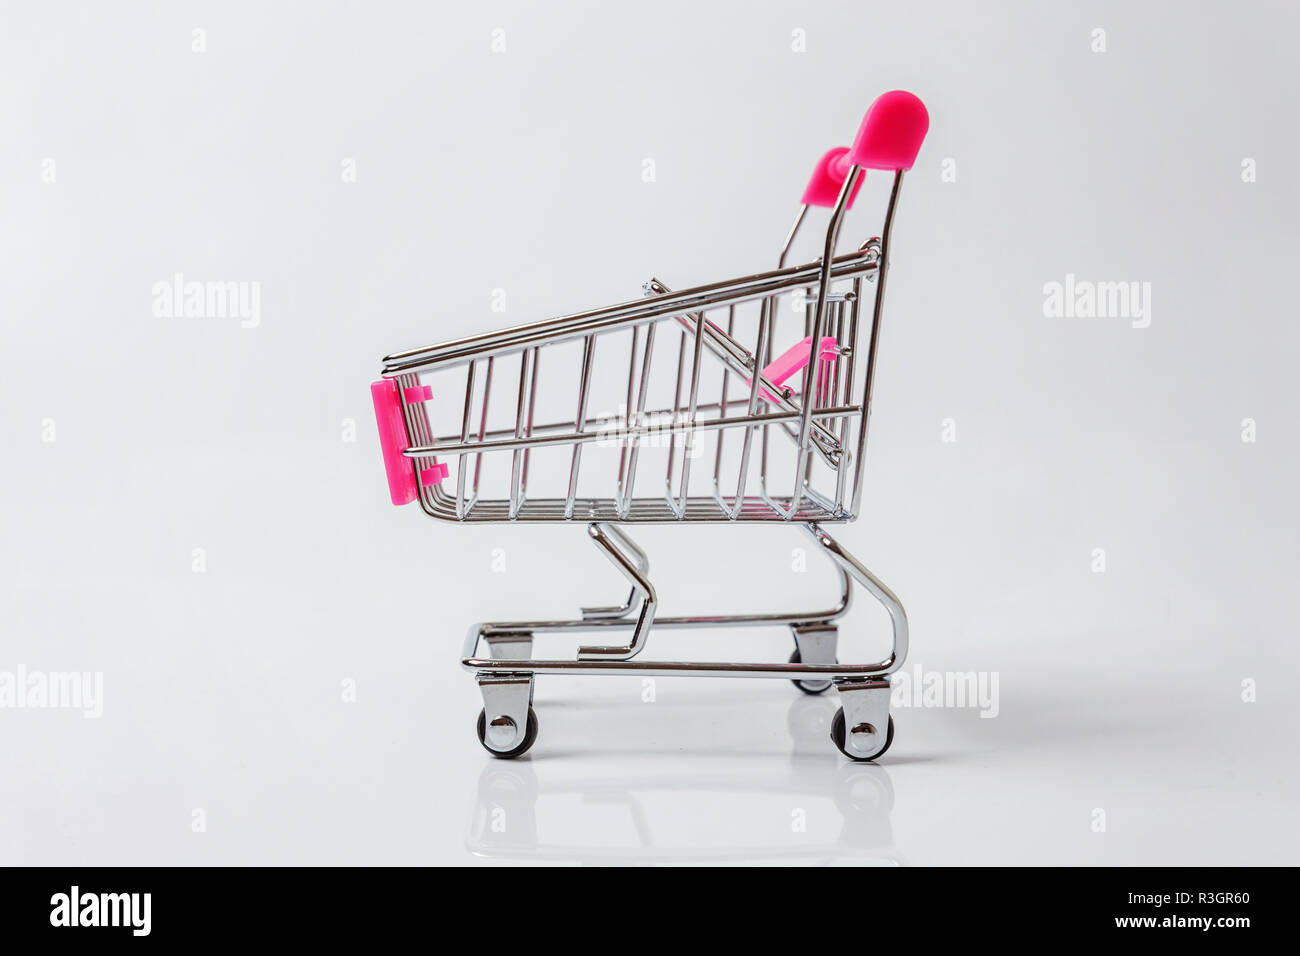 Small supermarket grocery push cart for shopping toy with wheels isolated on white background. Sale buy mall market shop consumer concept. Copy space Stock Photo